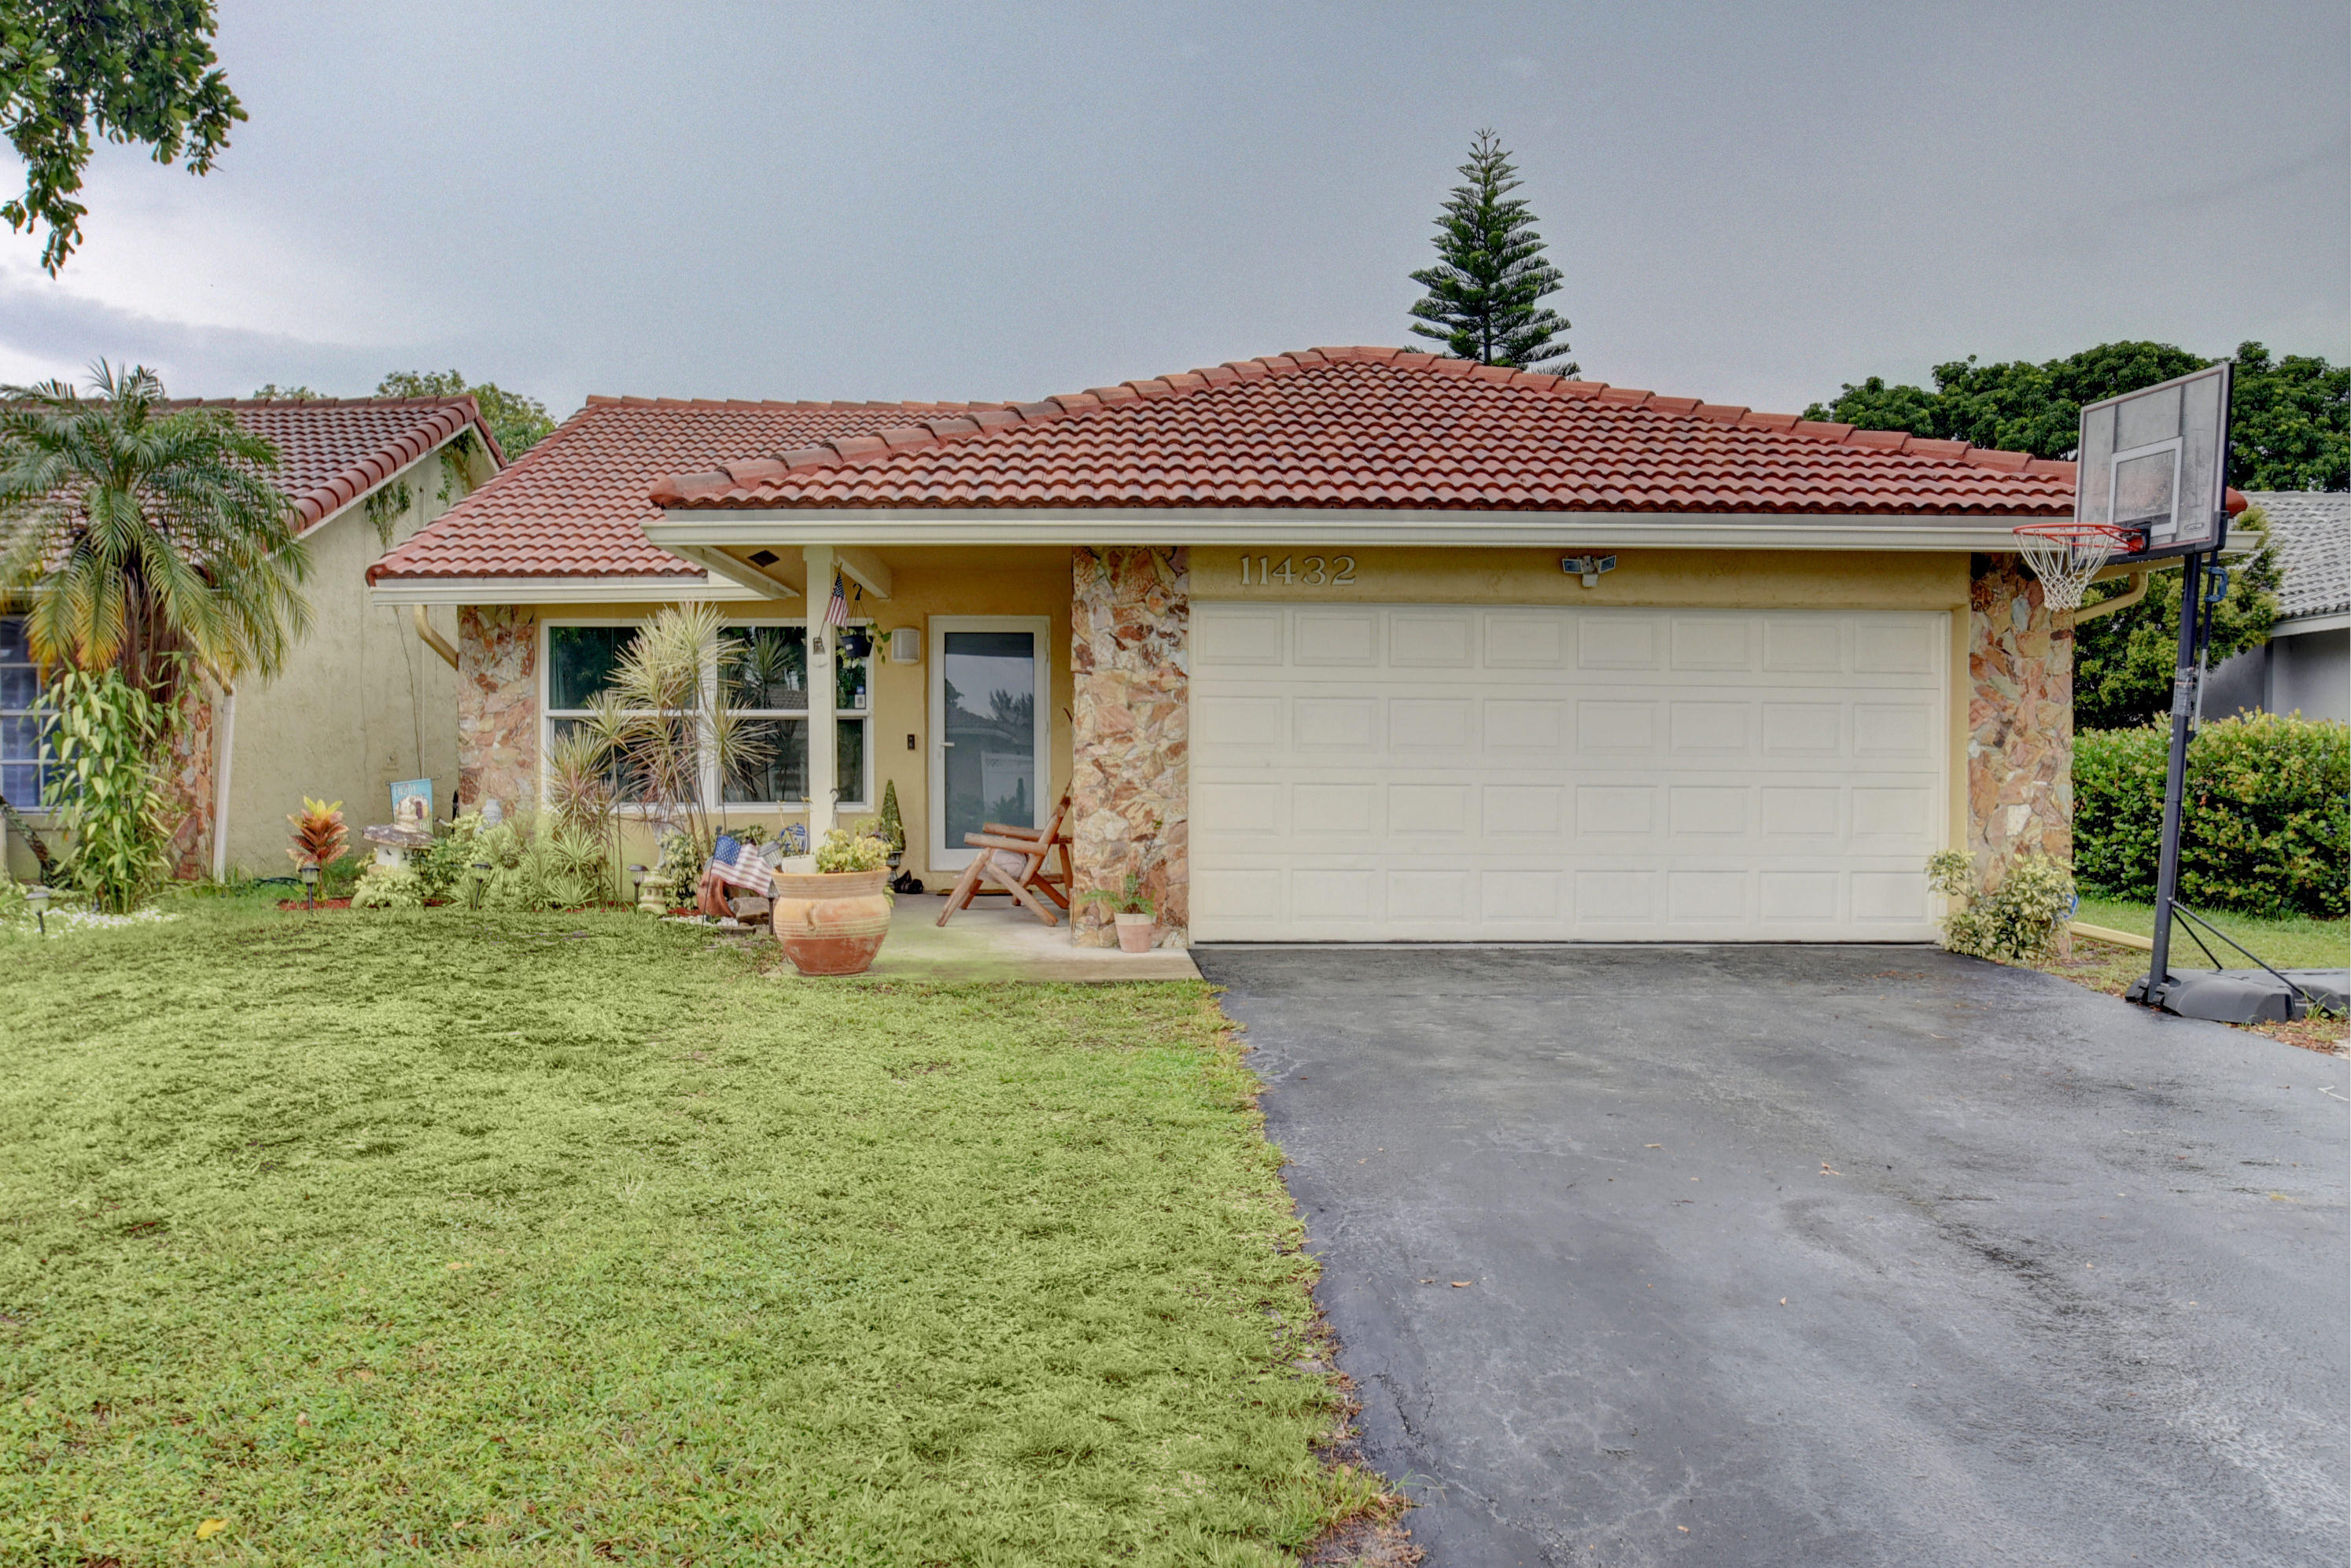 11432 NW 23rd Street - Coral Springs, Florida